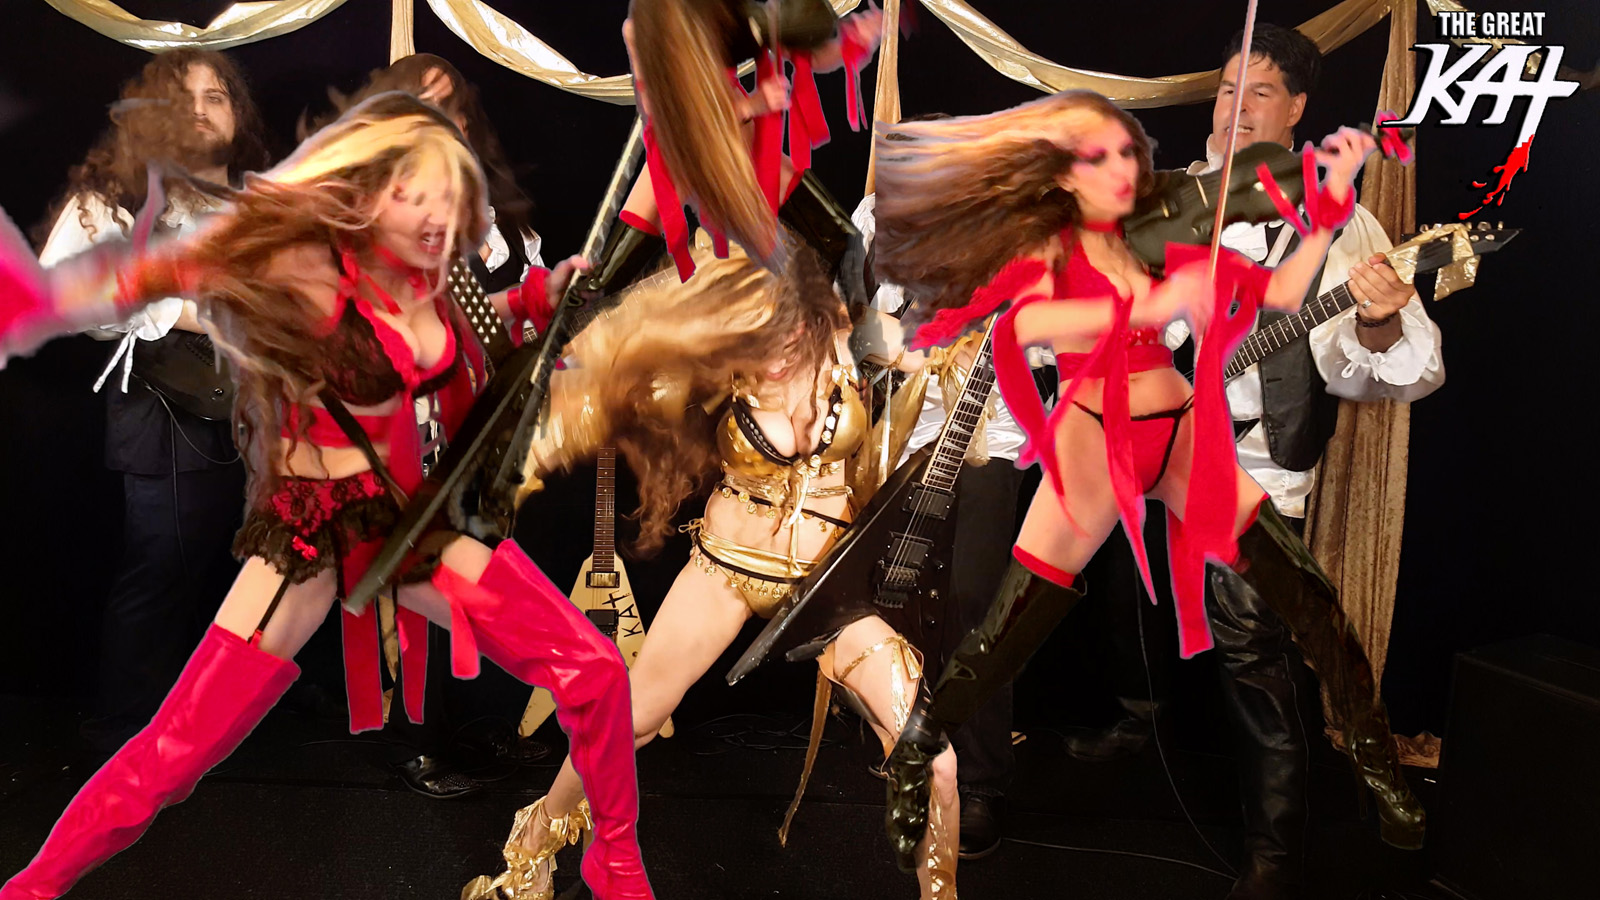 """THE GREAT KAT GUITAR/VIOLIN DOUBLE VIRTUOSO! From The Great Kat's LISZT'S """"HUNGARIAN RHAPSODY #2"""" MUSIC VIDEO!"""